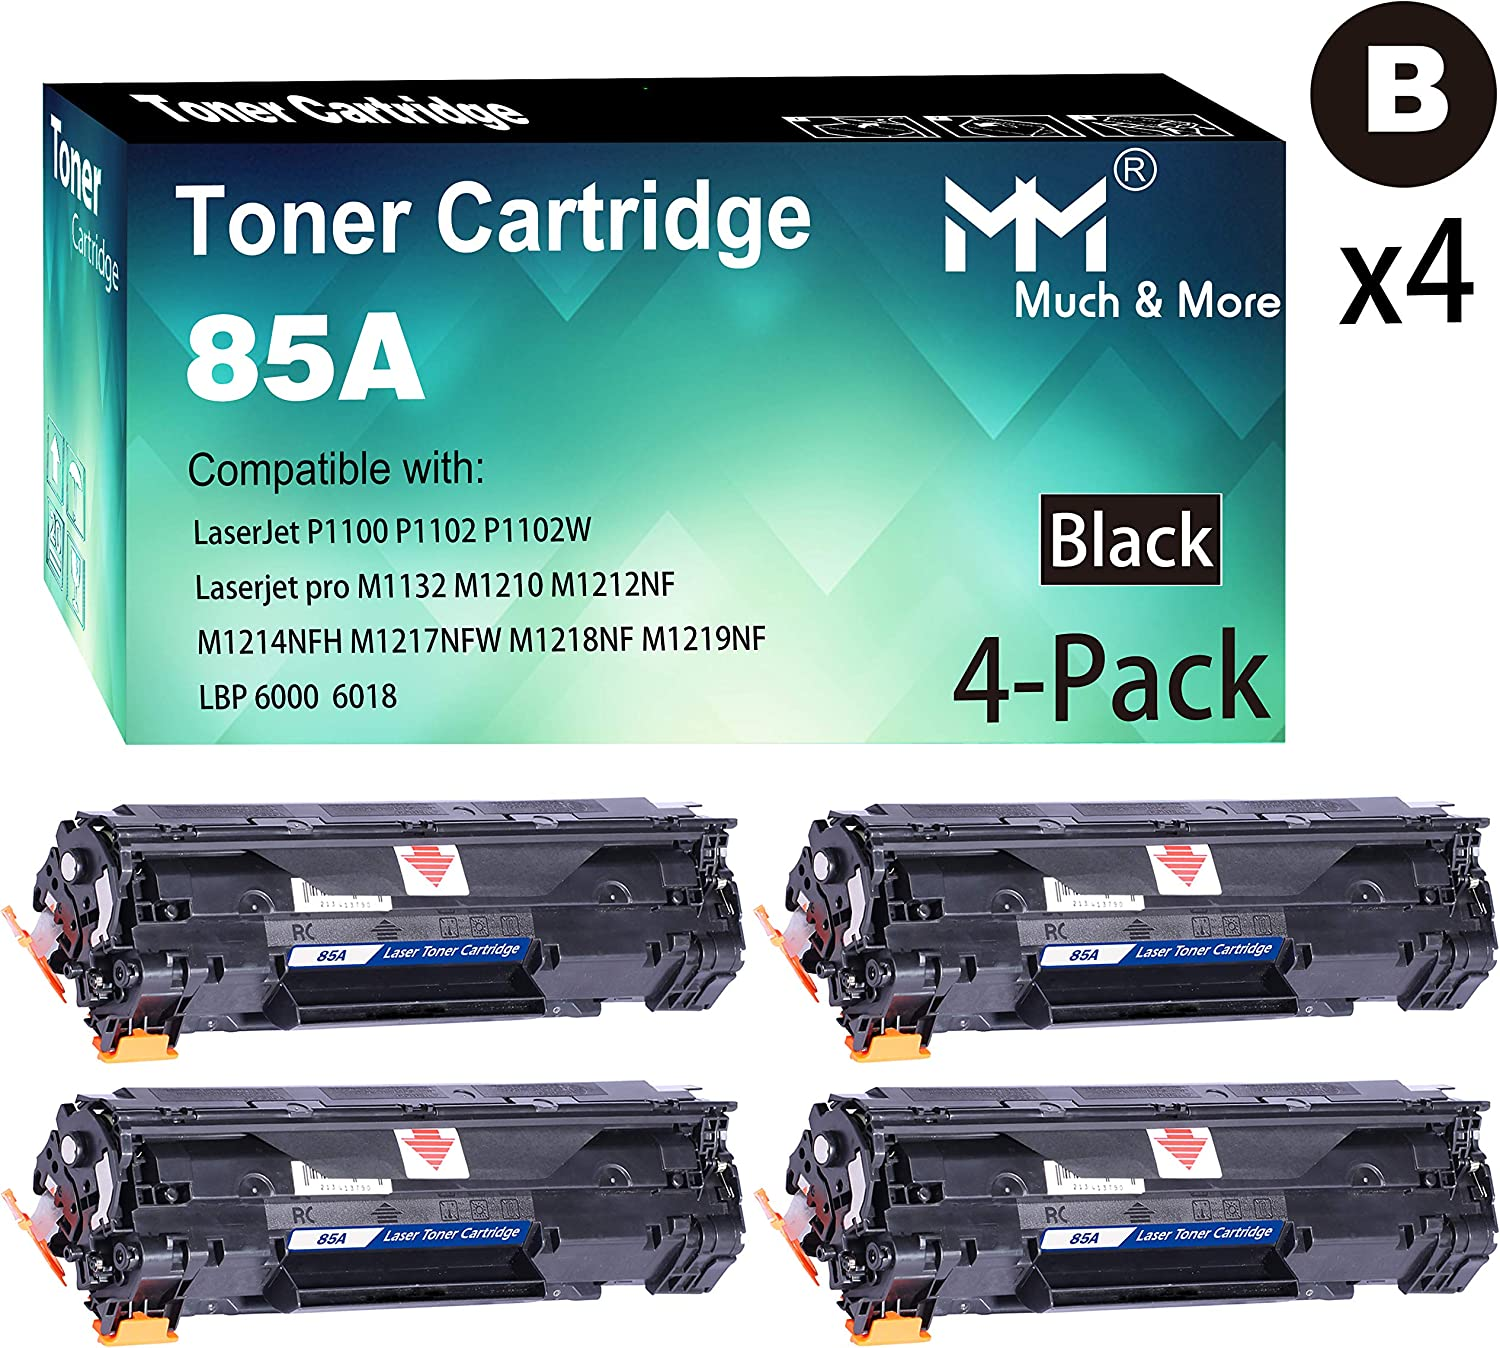 (Black, 4-Pack) Compatible HP 85A CE285A Toner Cartridge 285A to Used with HP Laserjet Pro P1102w P1109w M1212nf M1217nfw MFP Printer, by MuchMore